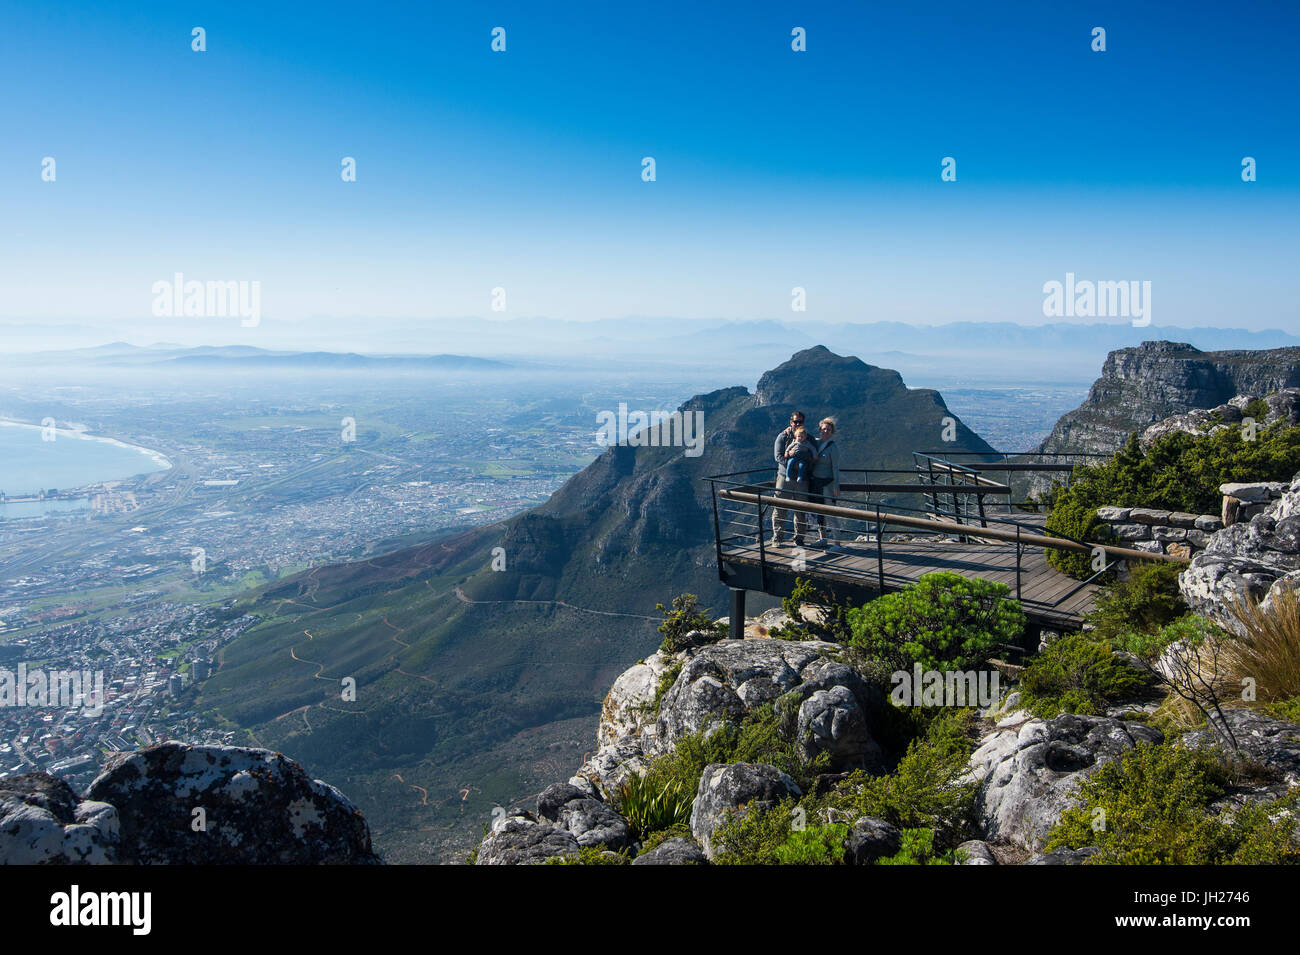 Family enjoying the view from Table Mountain over Cape Town, South Africa, Africa - Stock Image